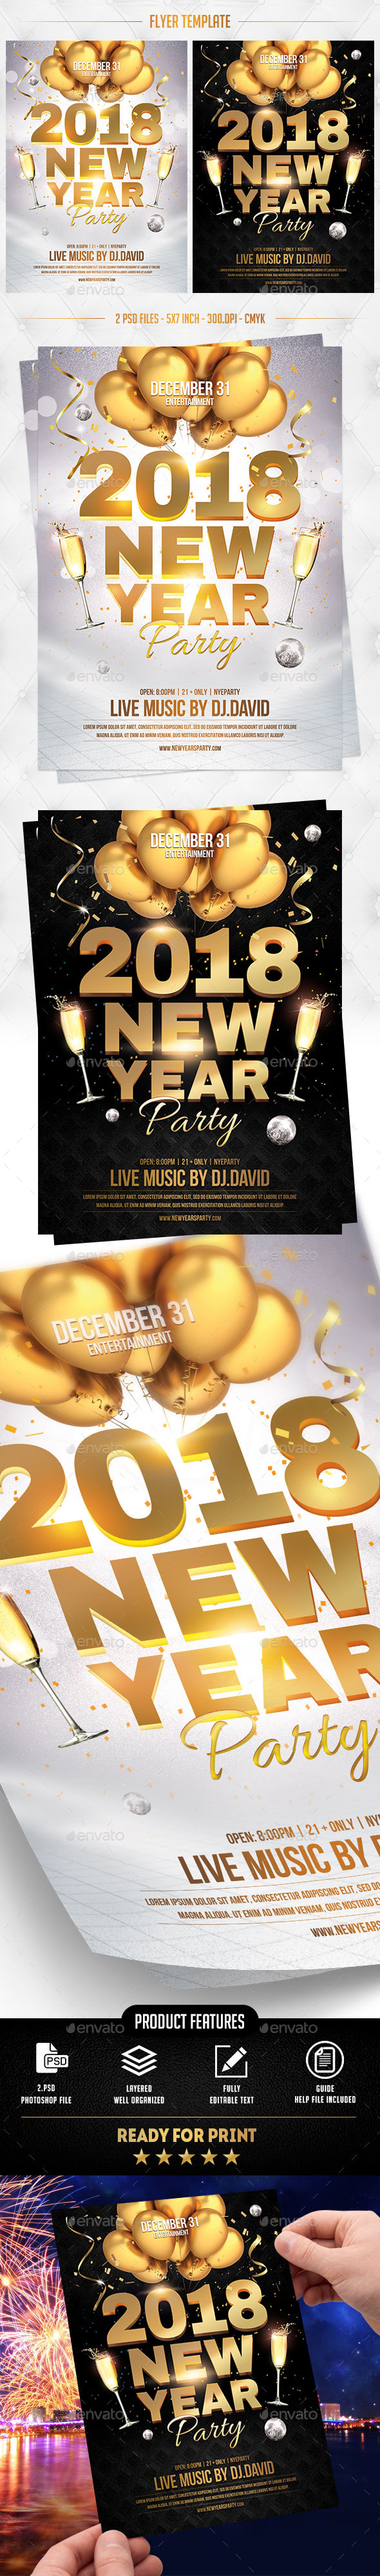 NYE 2018 Flyer Template - Events Flyers